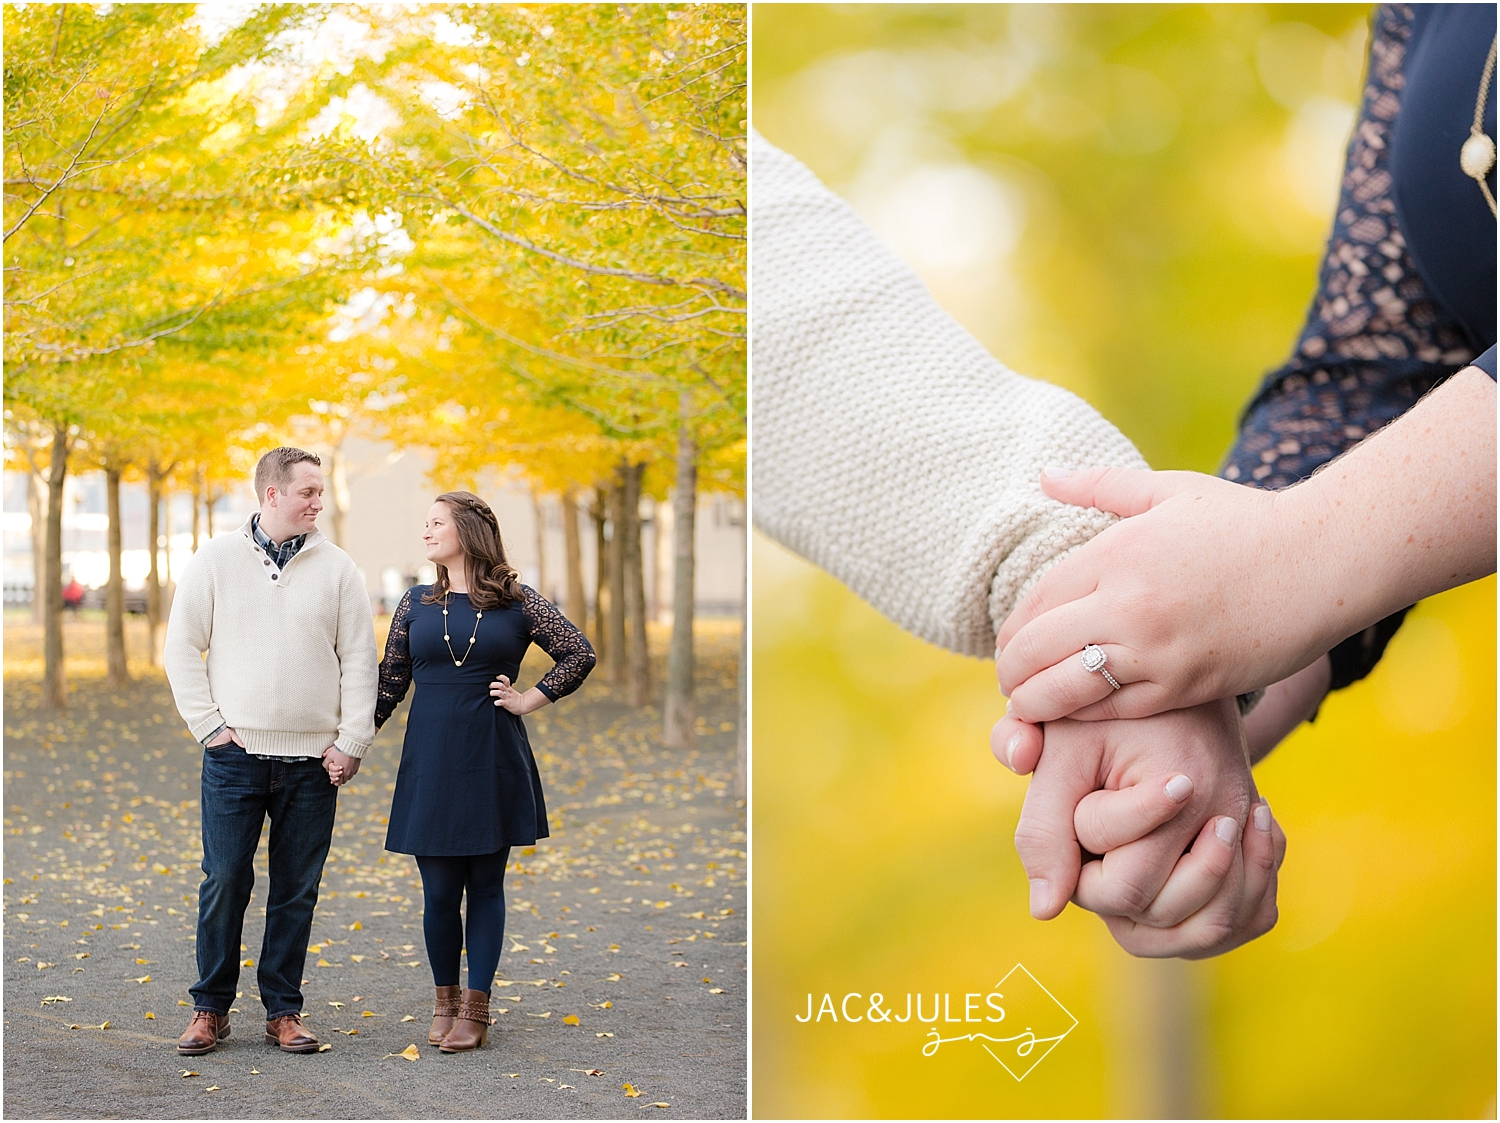 jacnjules photograph engagement session in Hoboken, NJ at Pier A